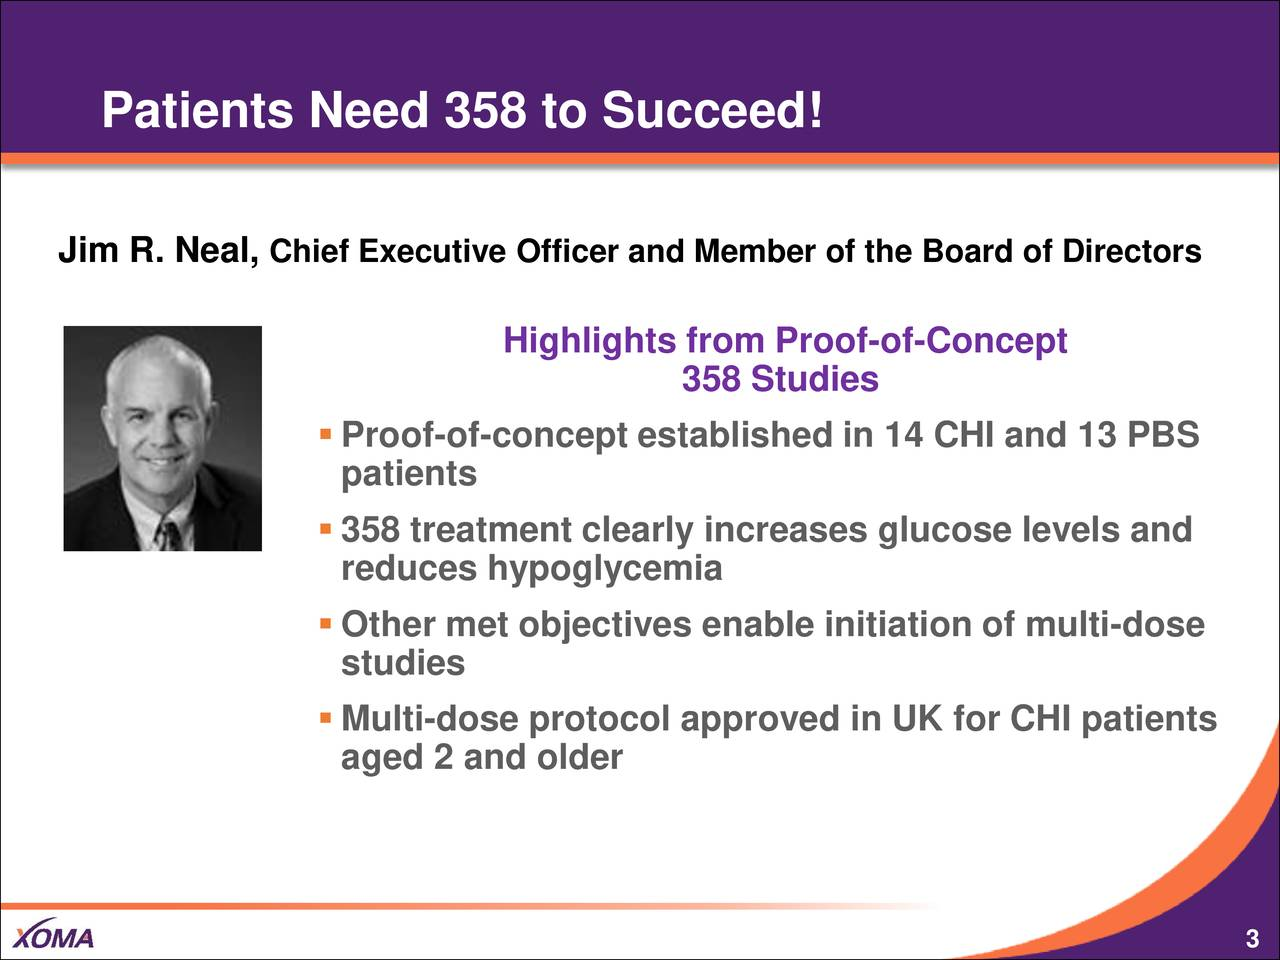 Jim R. Neal, Chief Executive Officer and Member of the Board of Directors Highlights from Proof-of-Concept 358 Studies Proof-of-concept established in 14 CHI and 13 PBS patients 358 treatment clearly increases glucose levels and reduces hypoglycemia Other met objectives enable initiation of multi-dose studies Multi-dose protocol approved in UK for CHI patients aged 2 and older